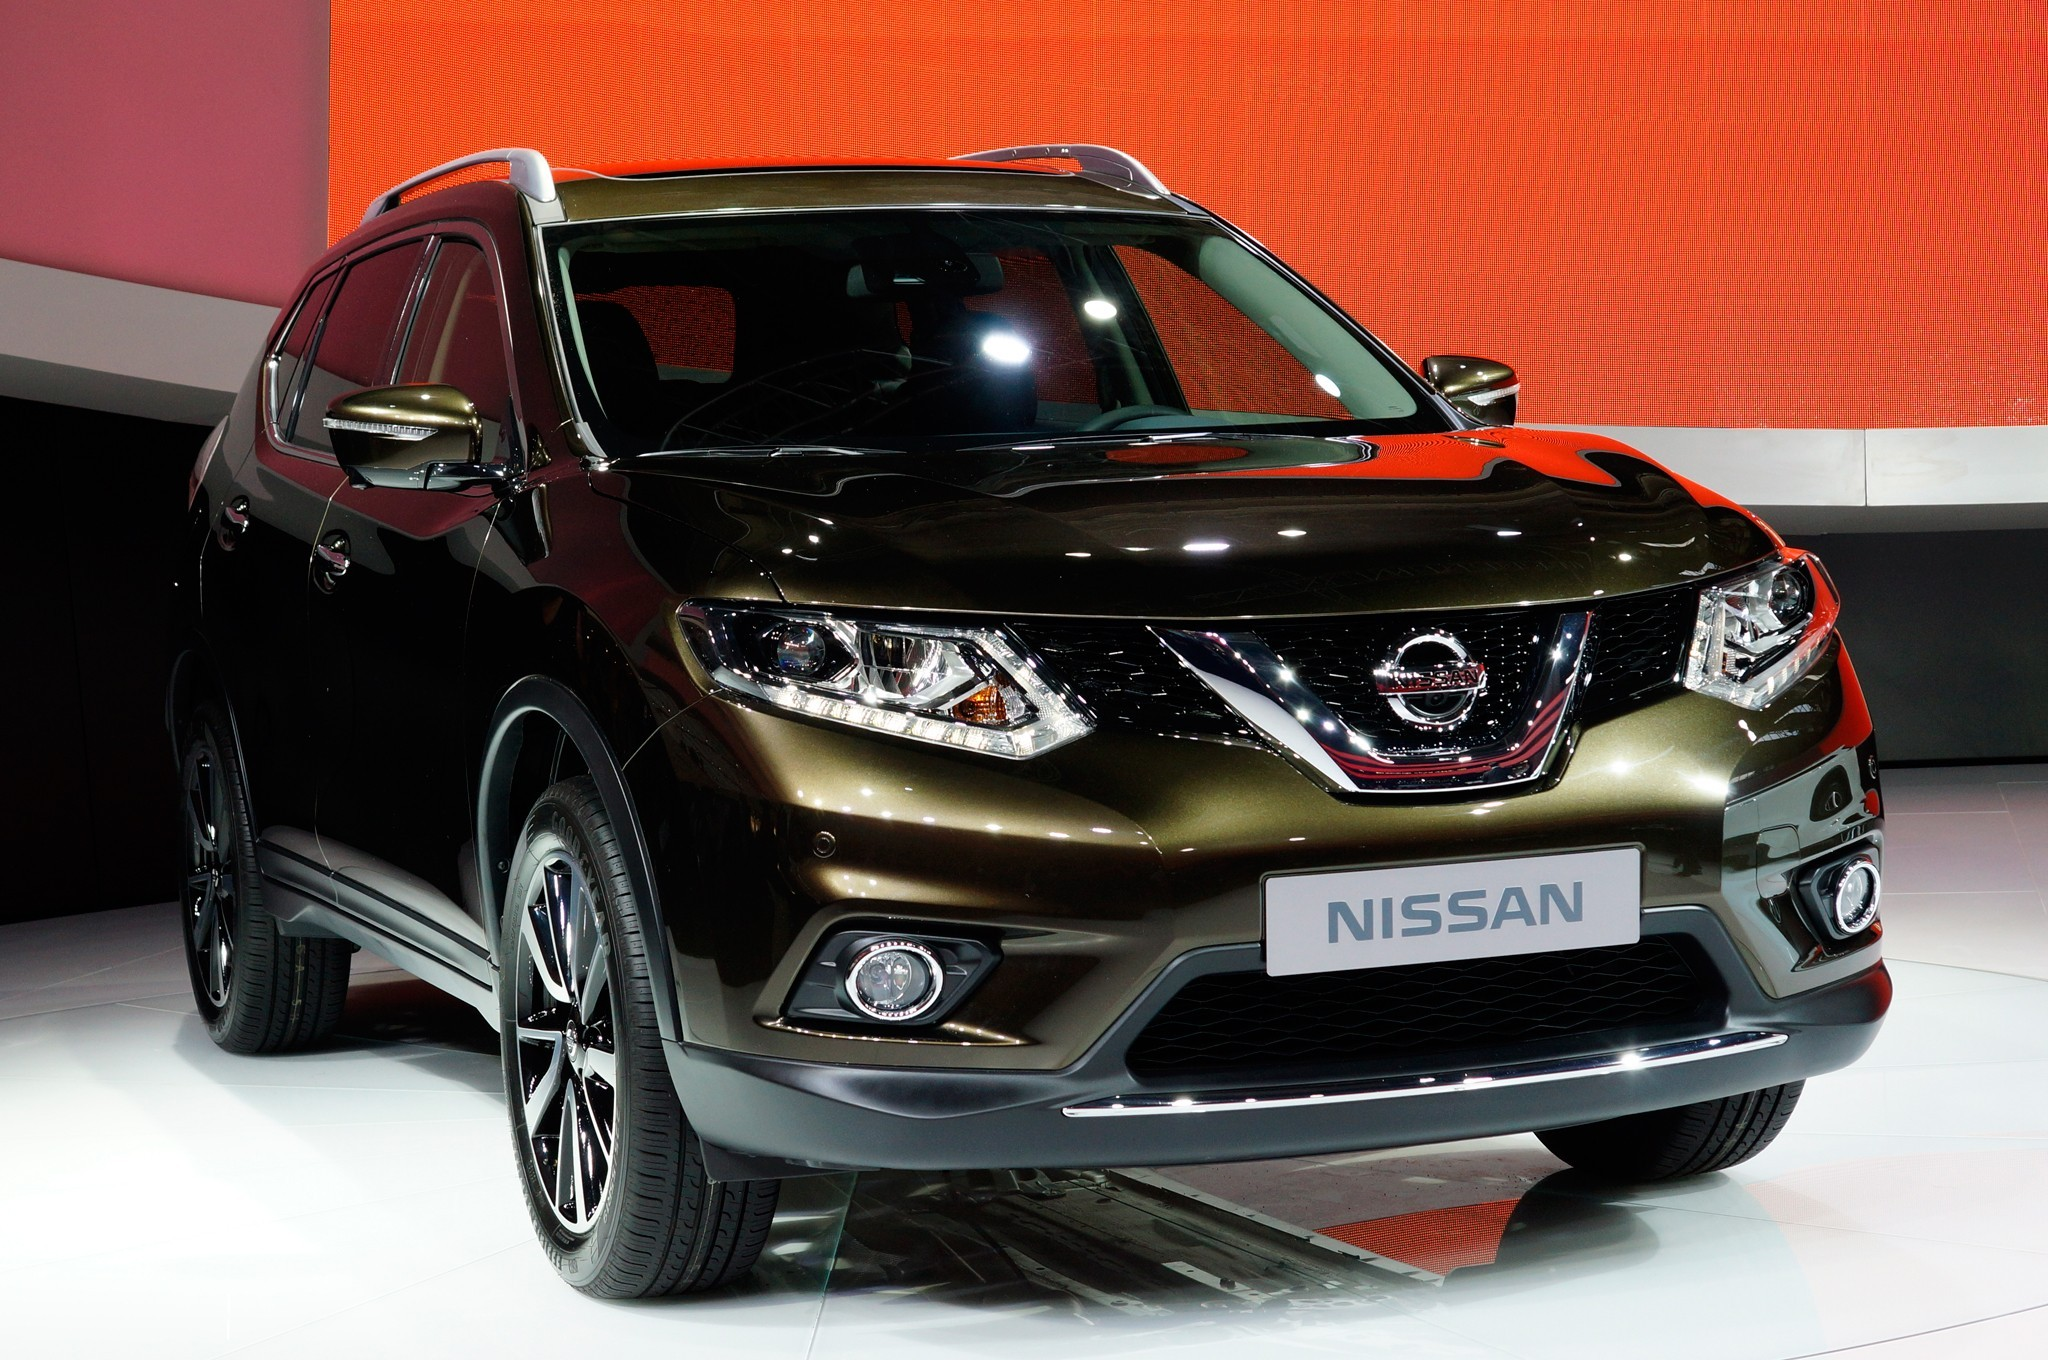 Nissan Rogue SL 2014 Review